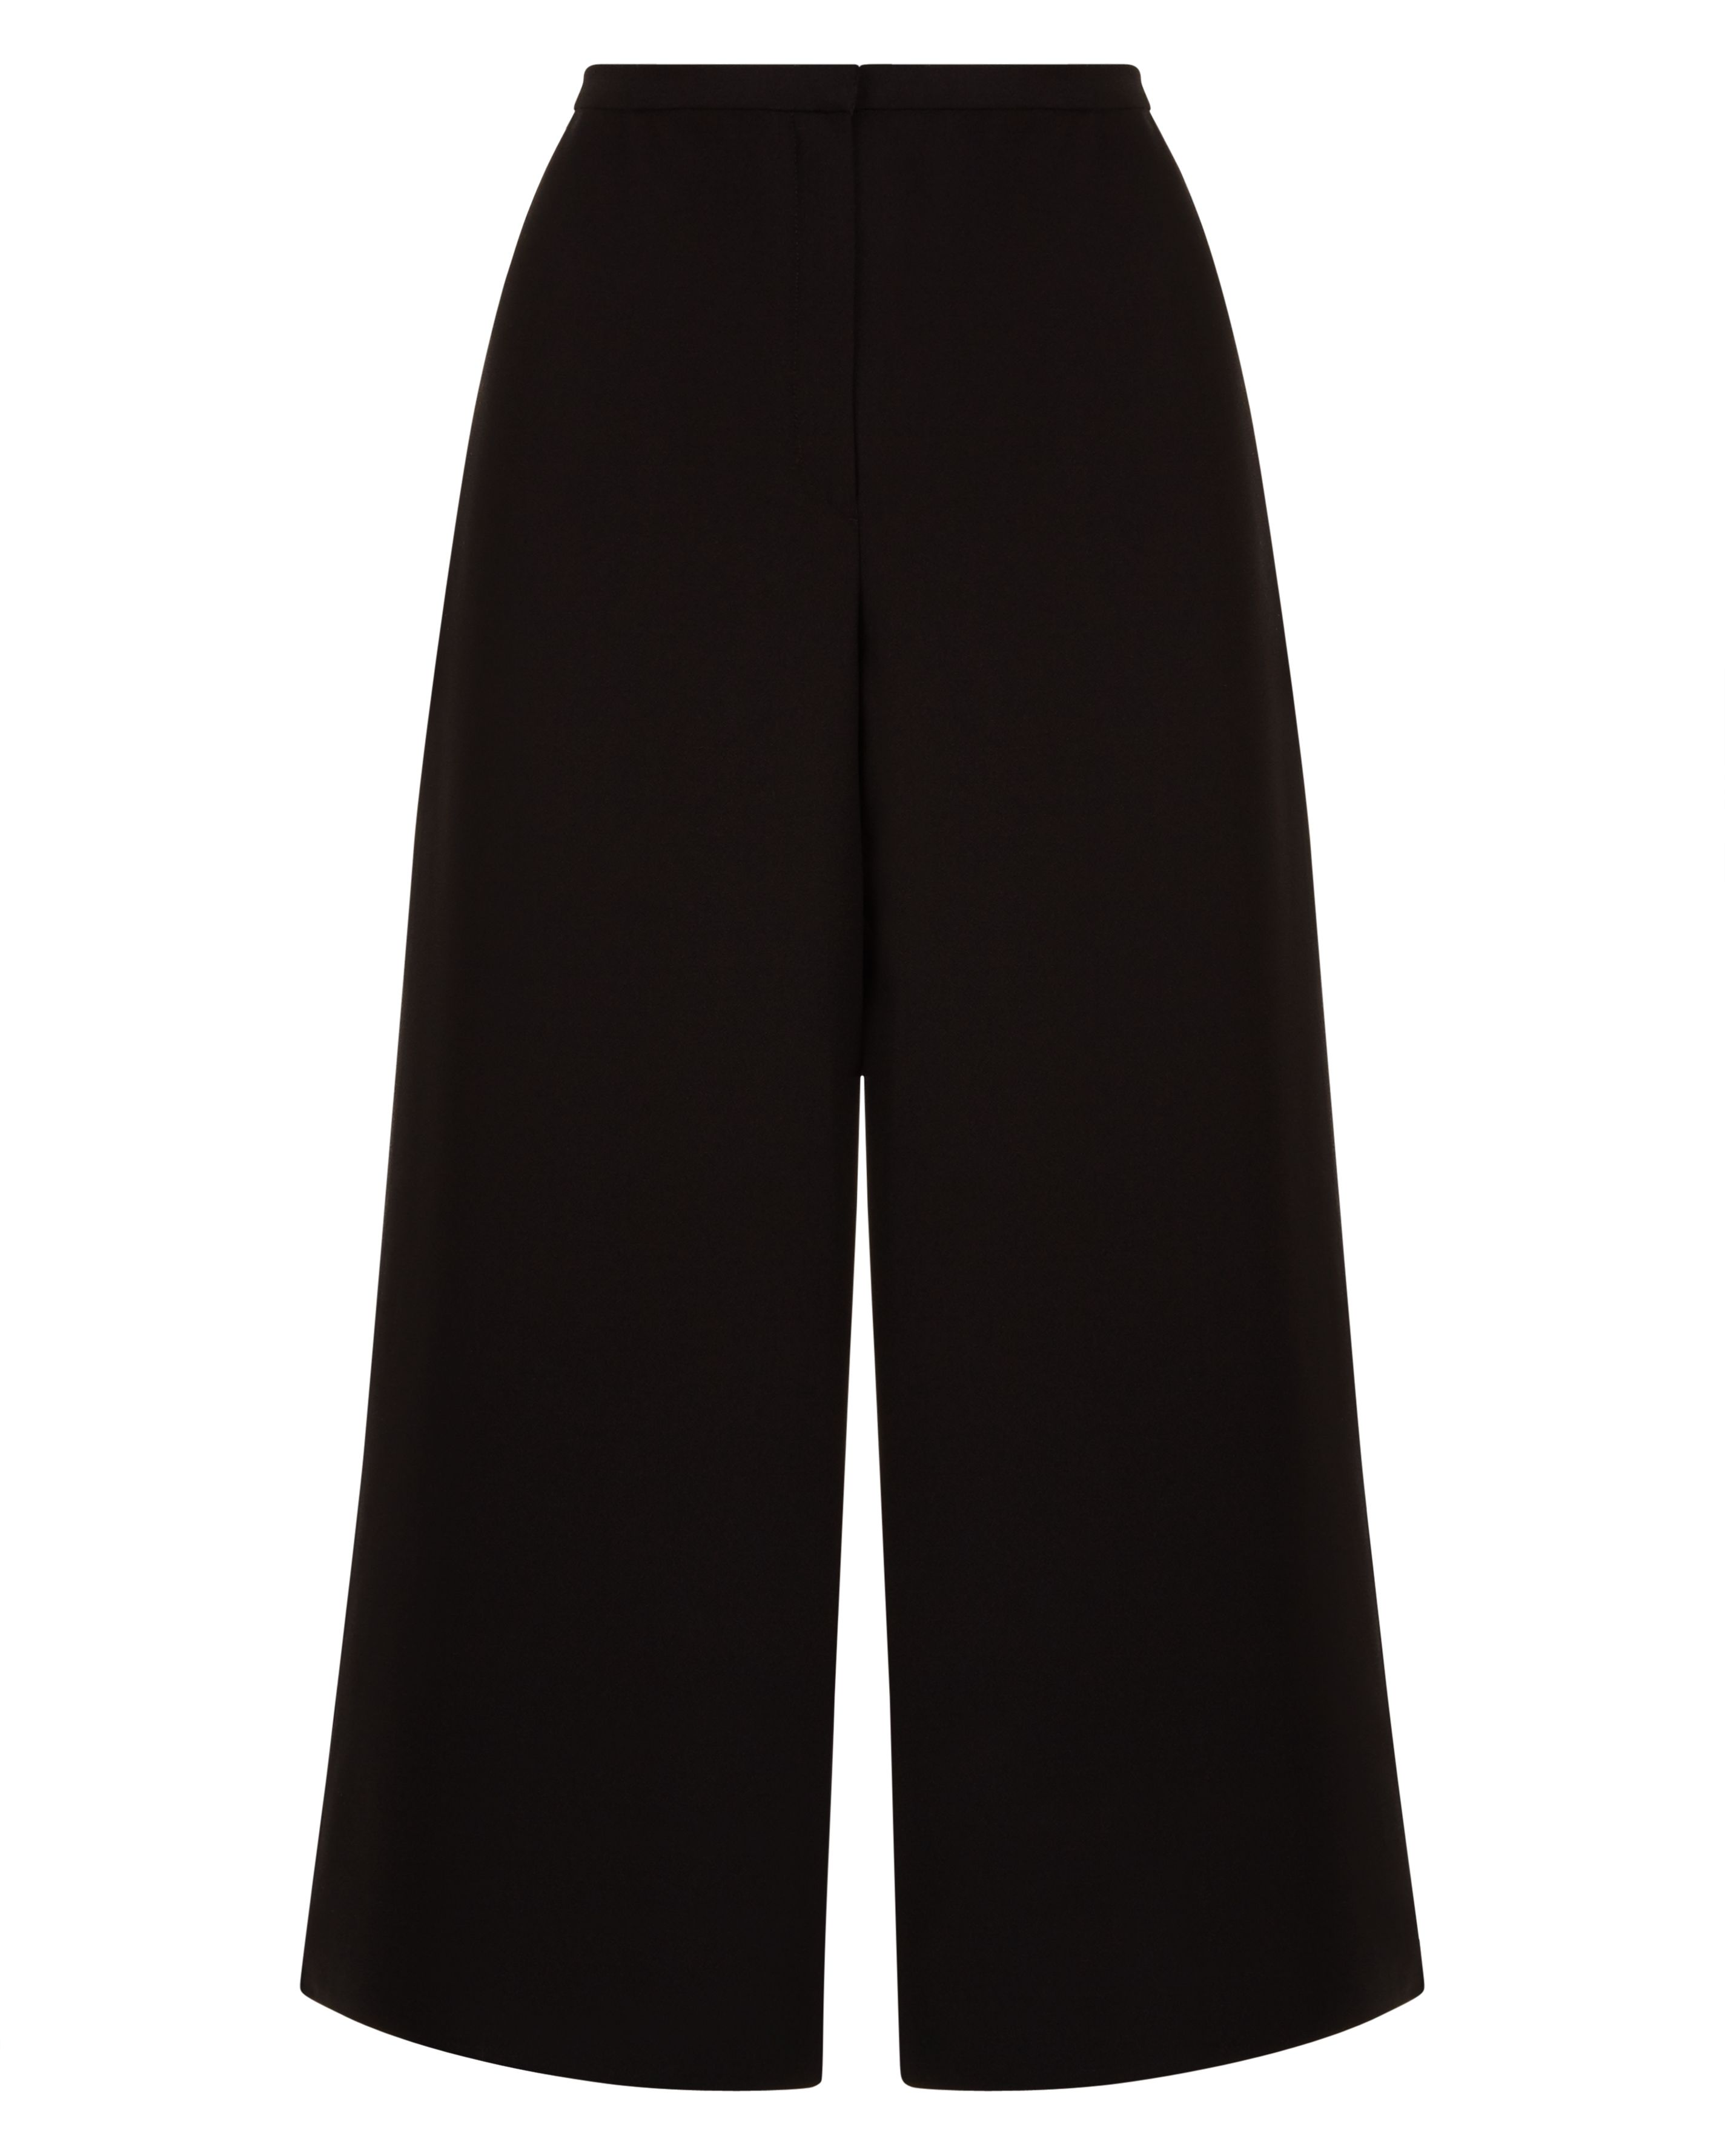 Jaeger High-Waisted Fluid Trousers, Black